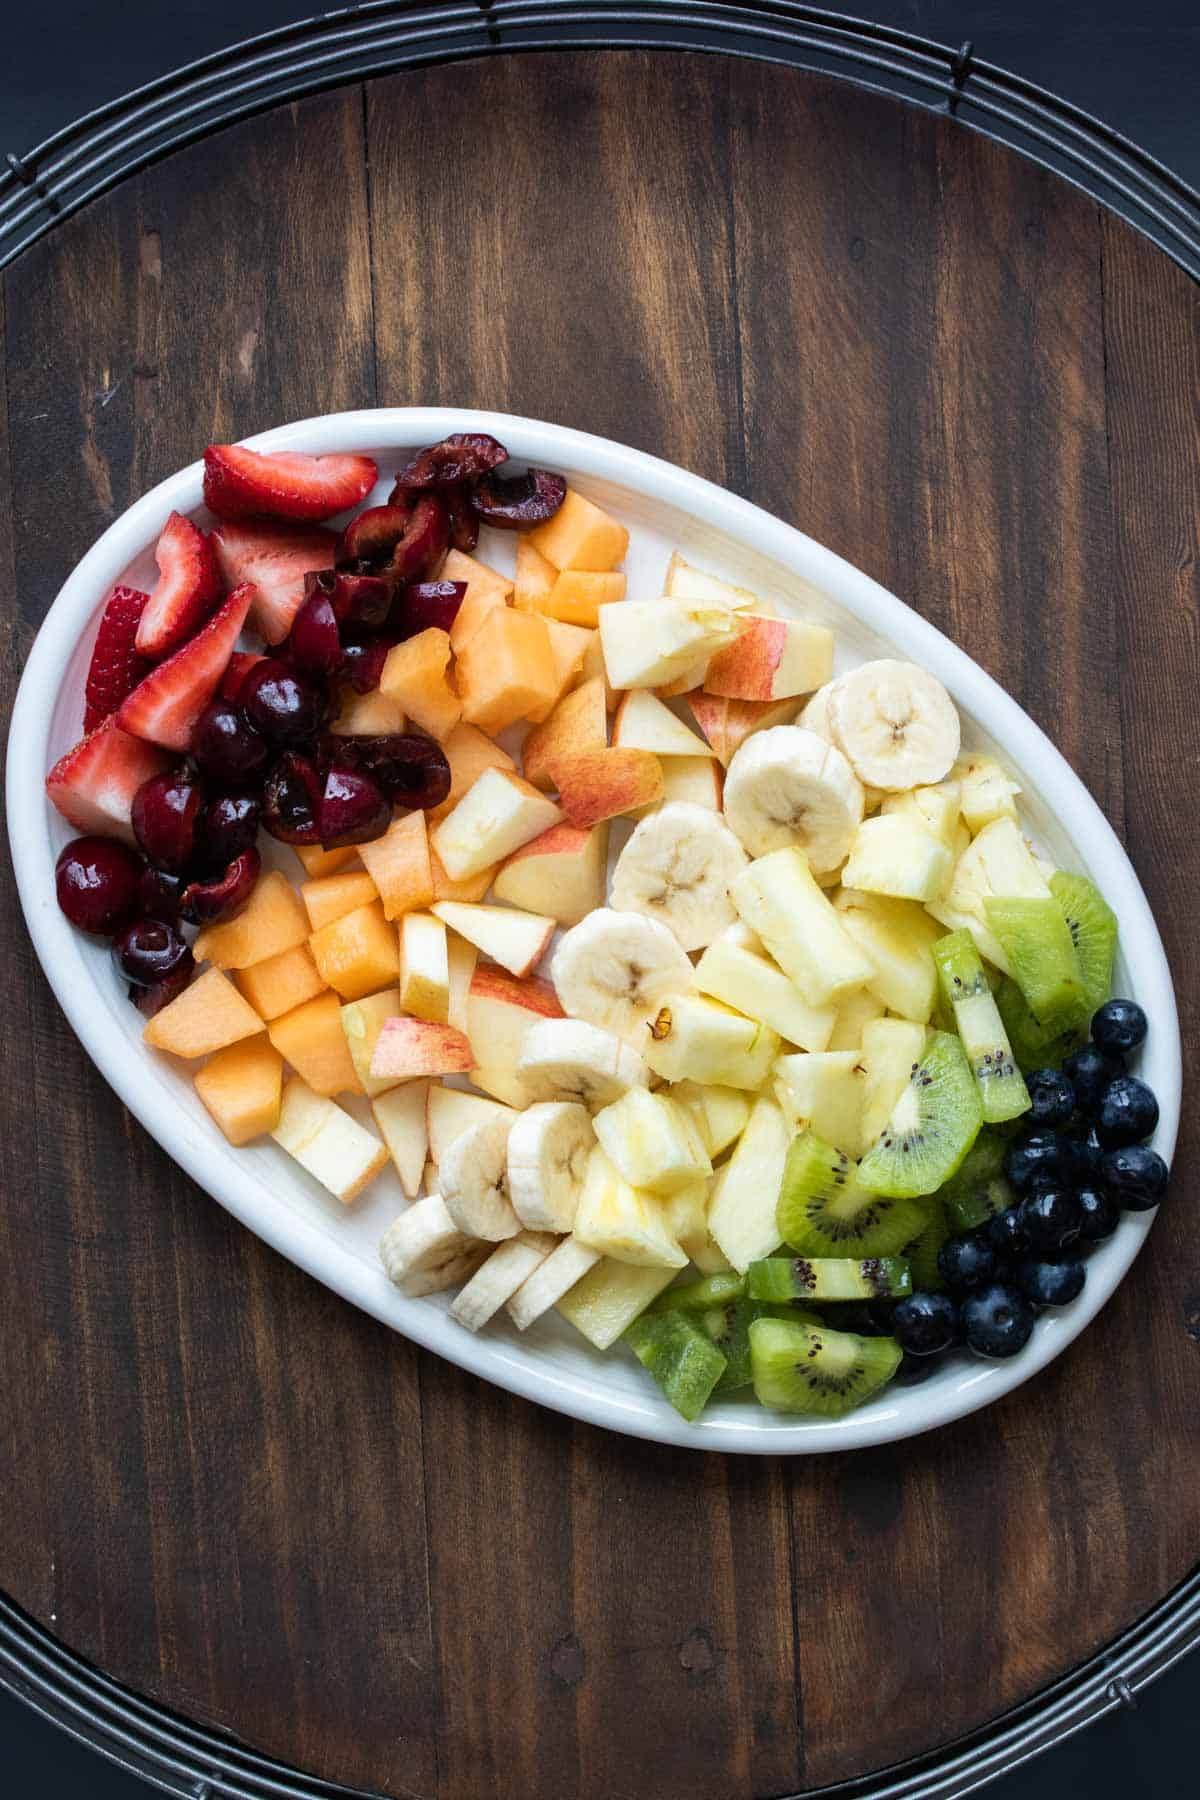 White platter with rows of different cut up fruit